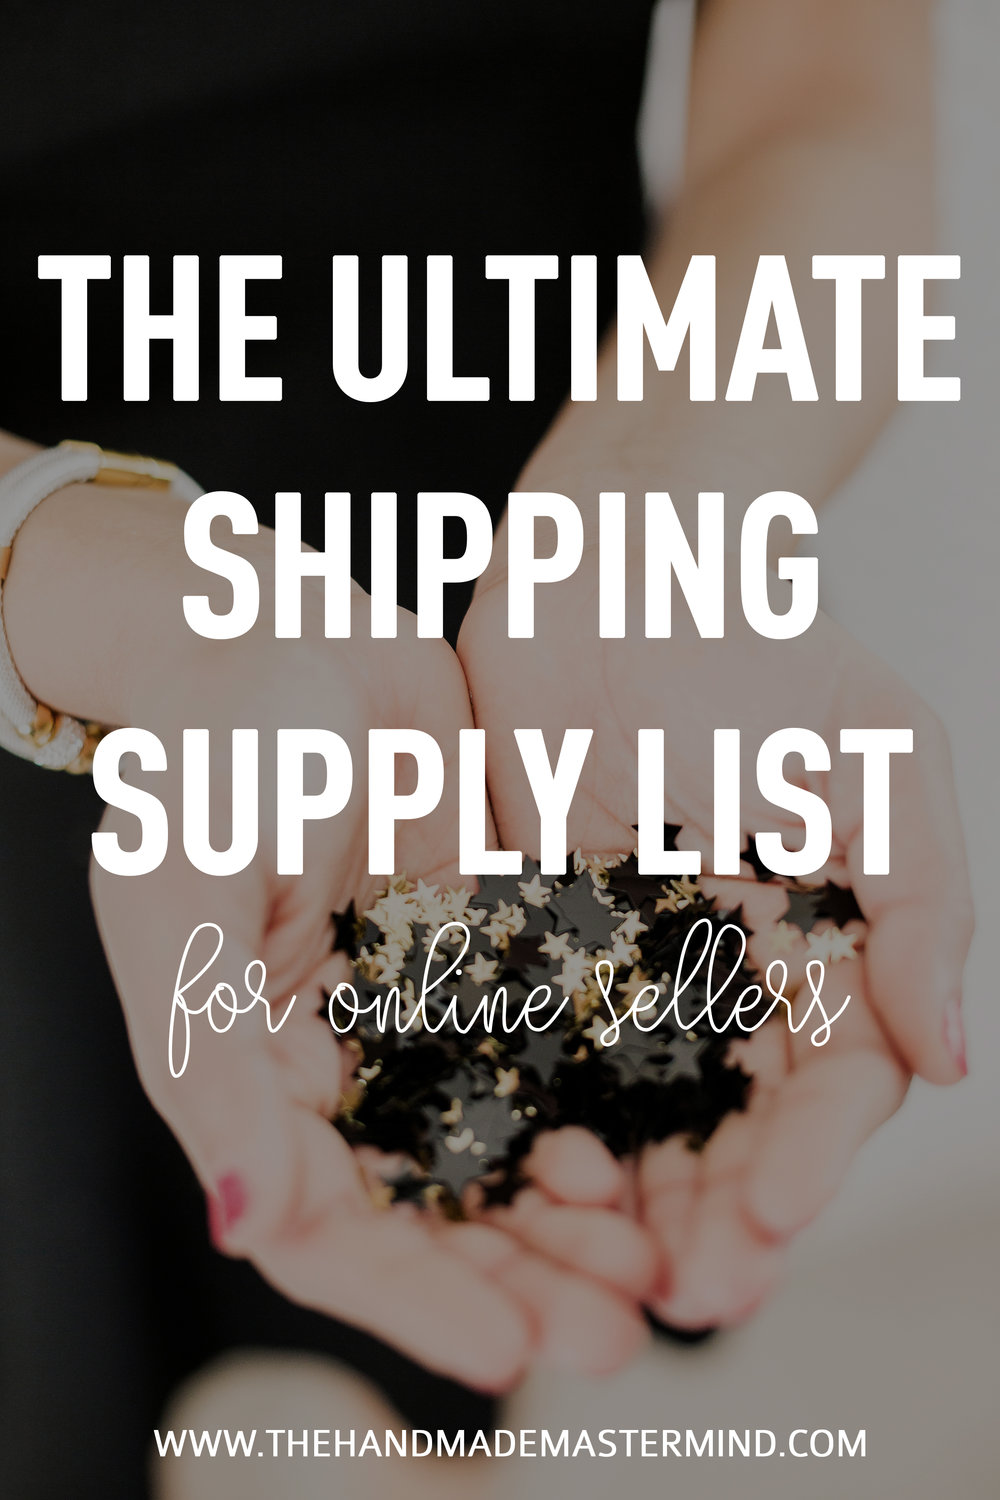 The Ultimate Shipping Supply List for Online Sellers - The Handmade Mastermind